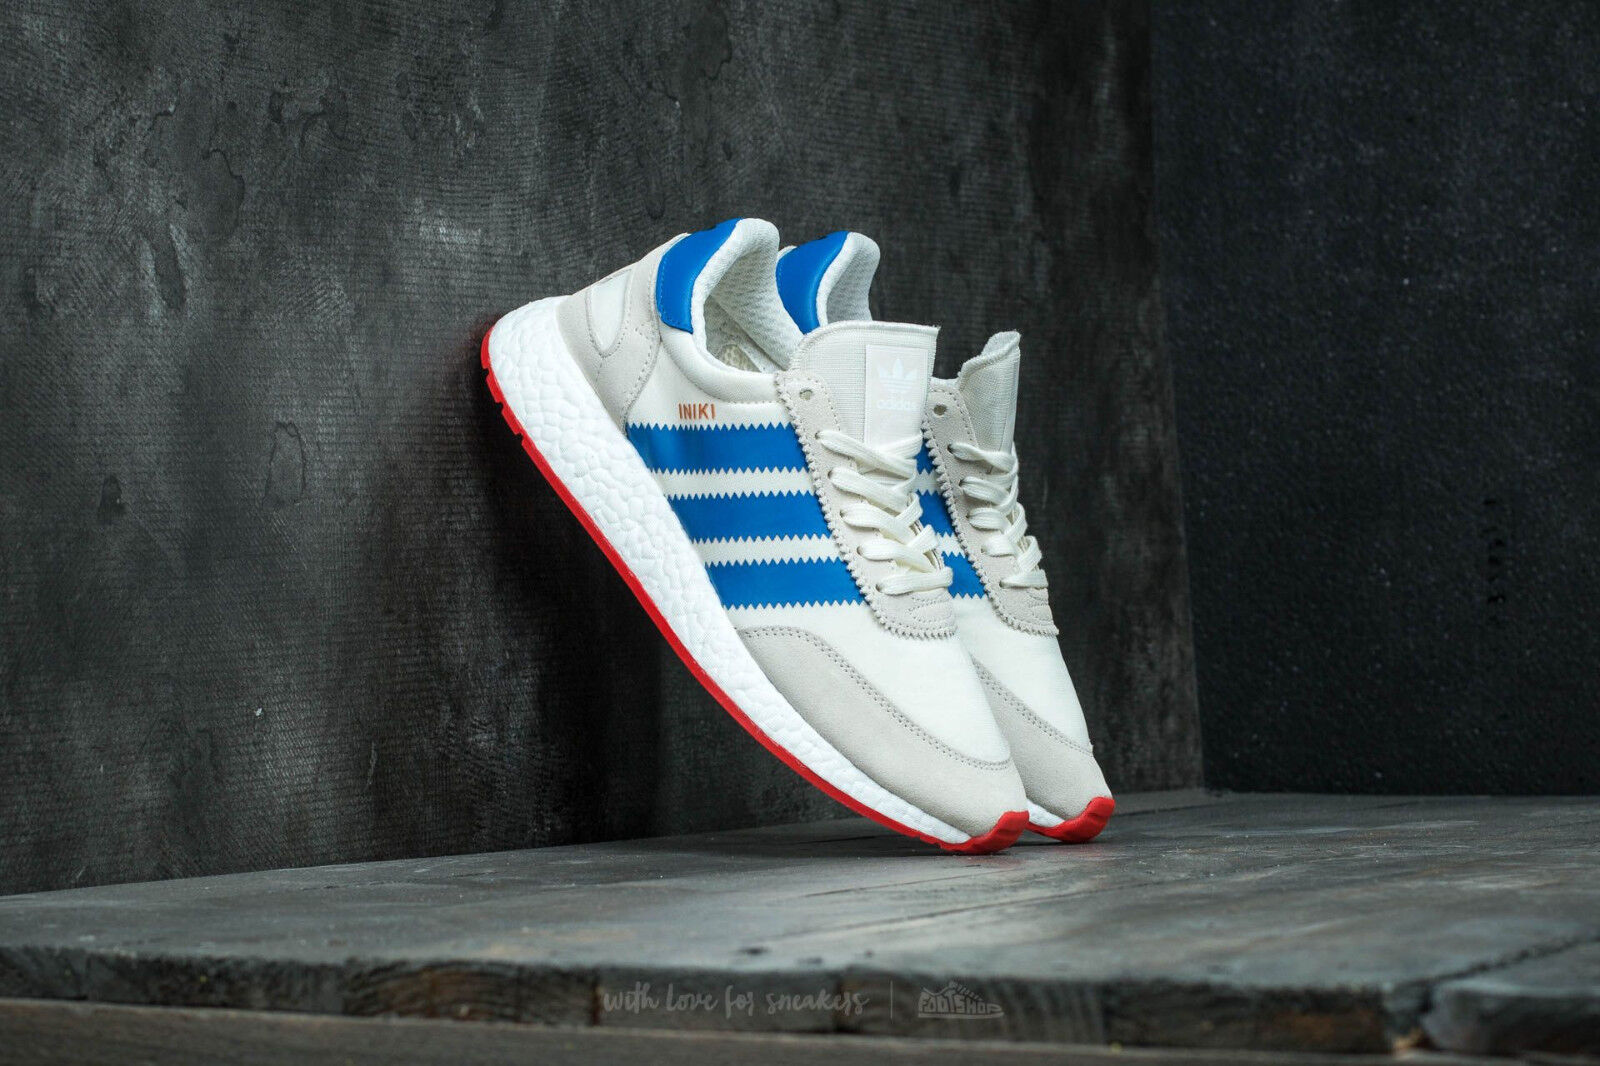 Adidas Iniki Runner 1.0 Men Size US 7.5 US 12 Off White Blue Boost BB2093